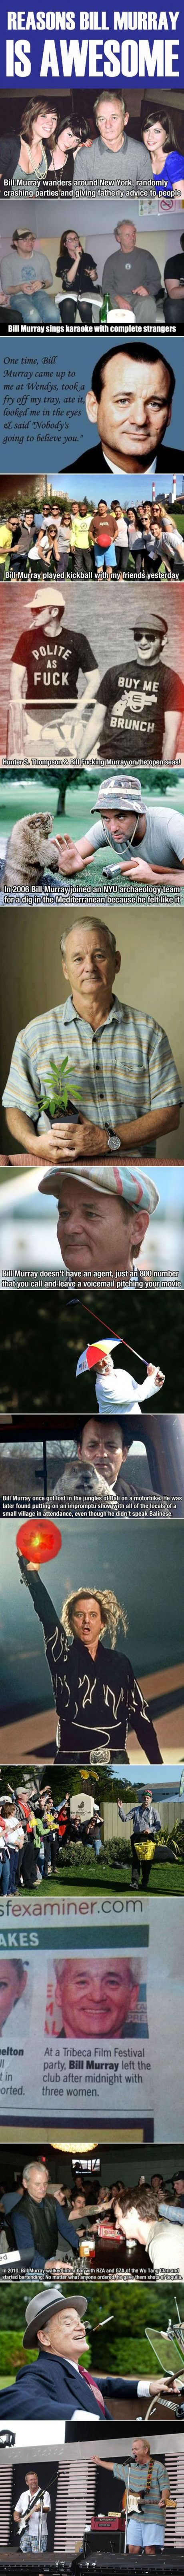 why-bill-murray-is-awesome_3